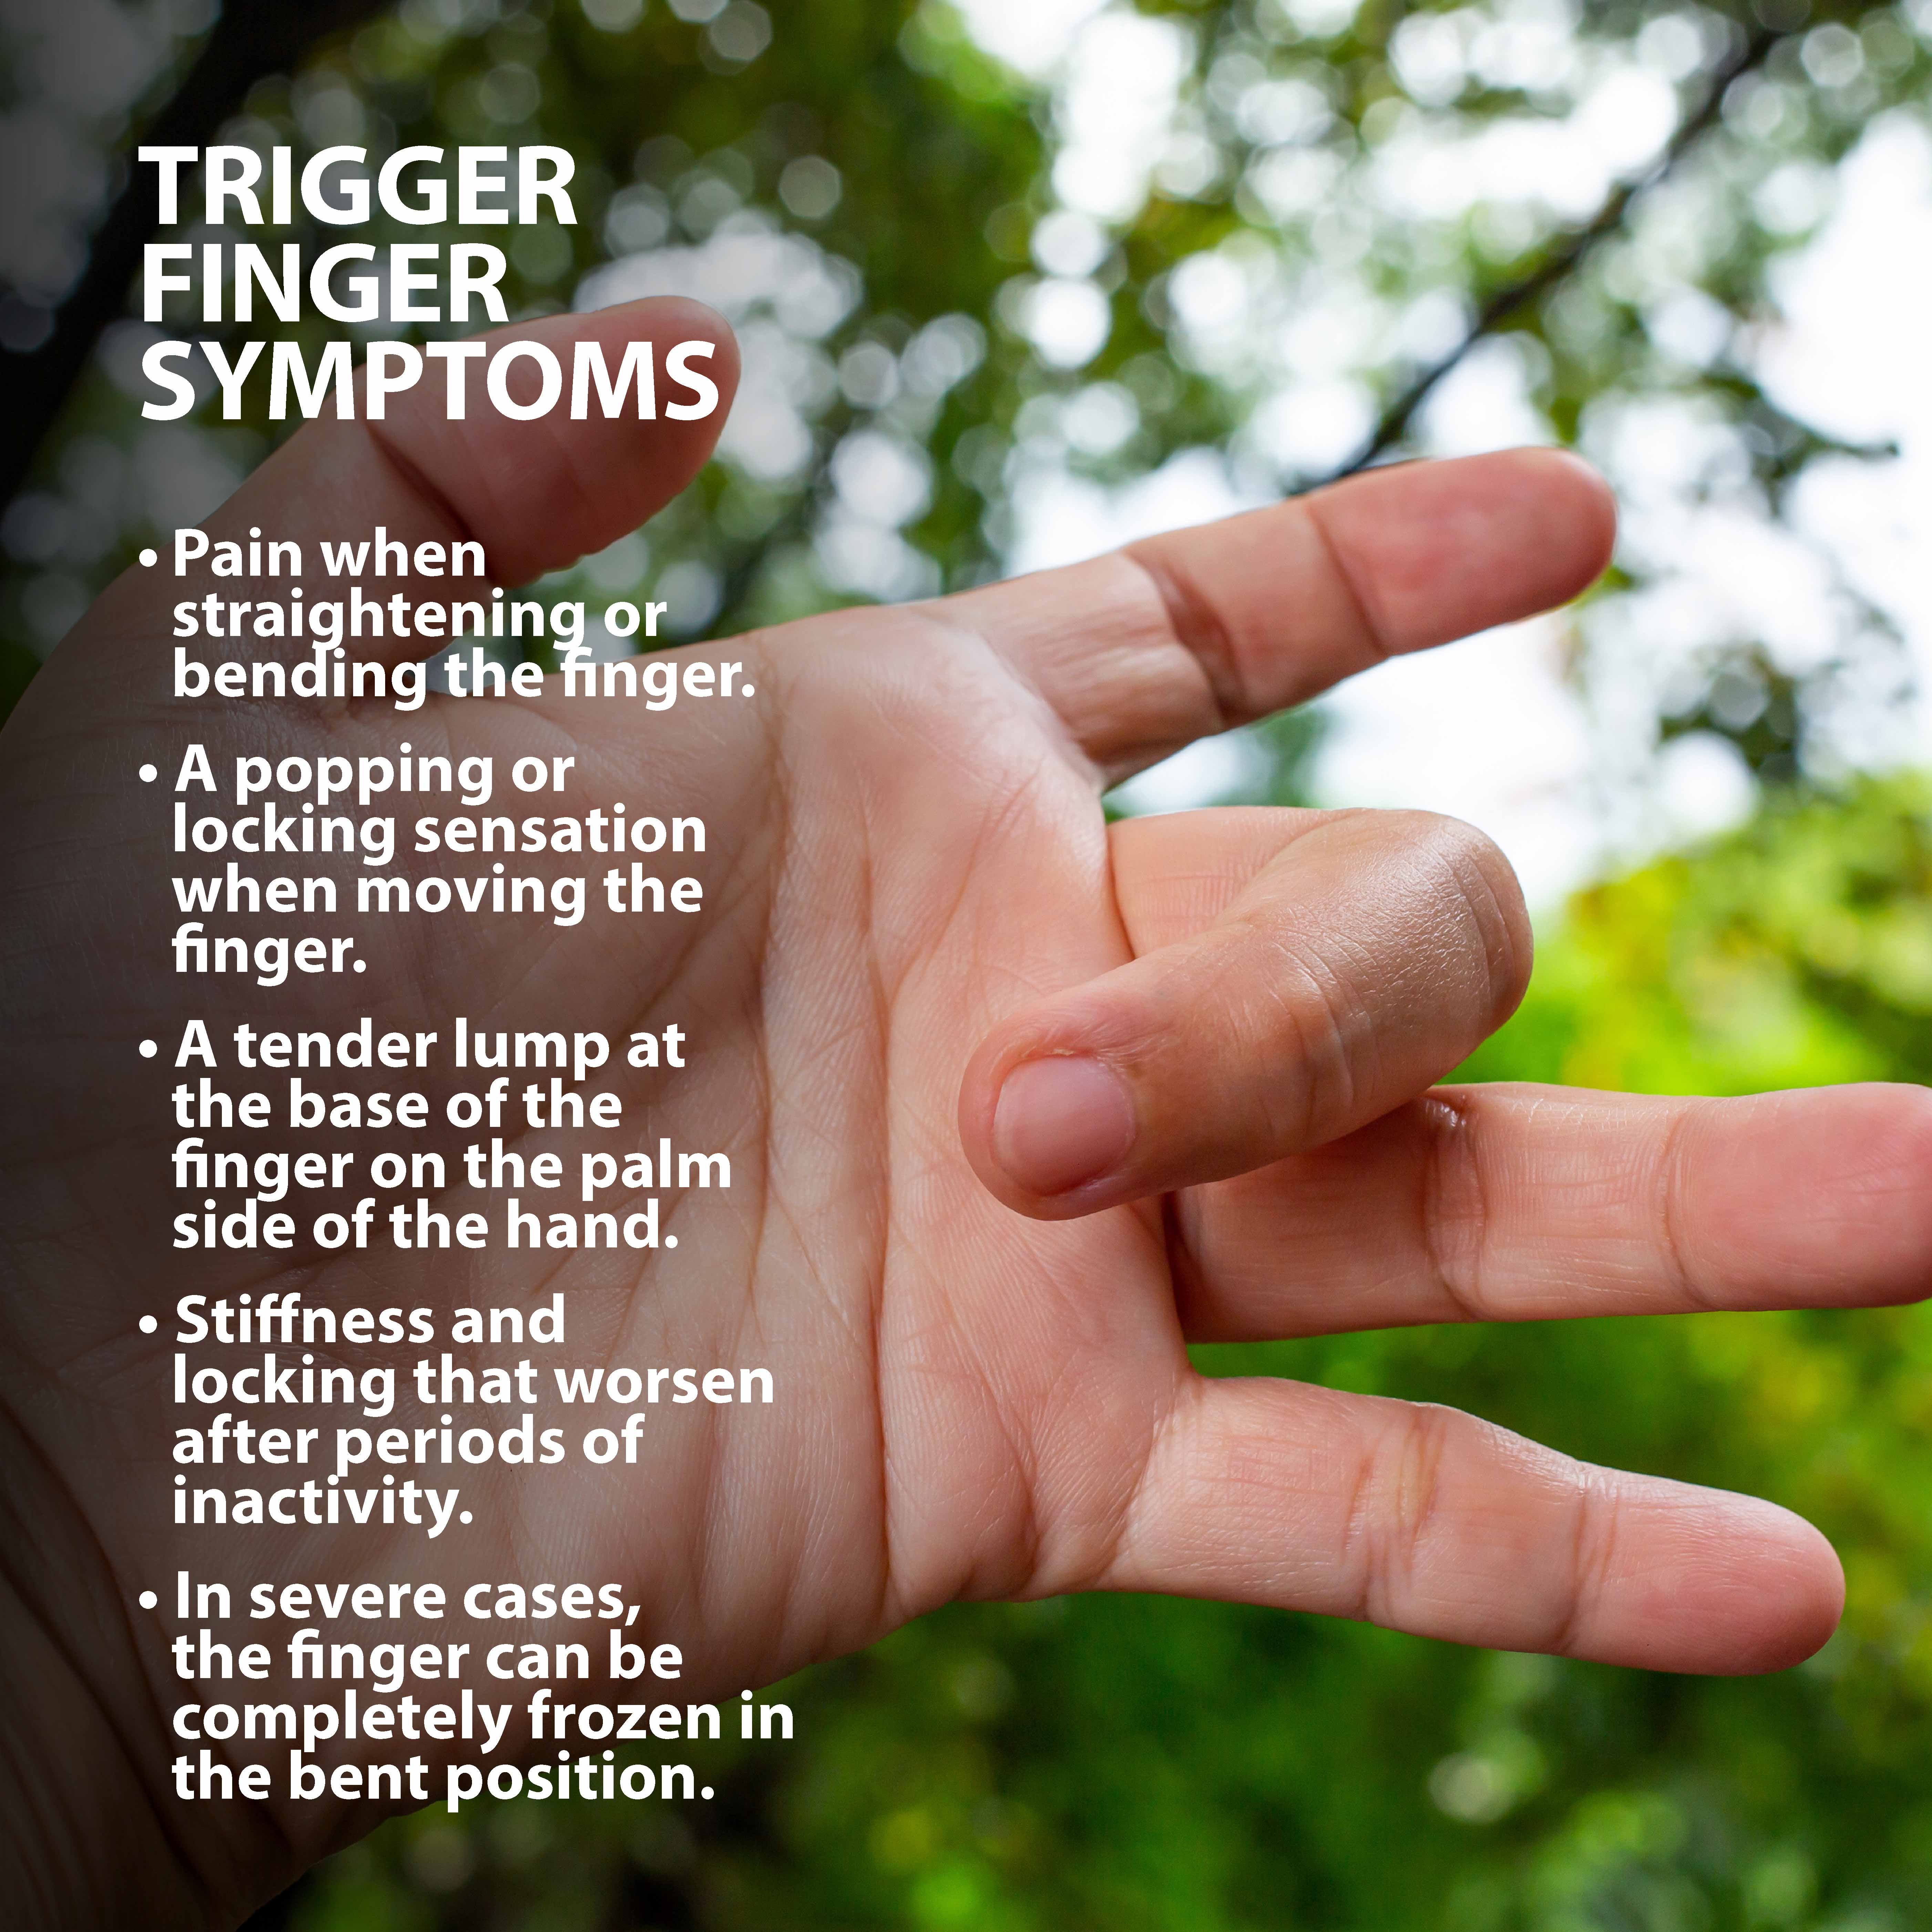 Trigger finger information graphic